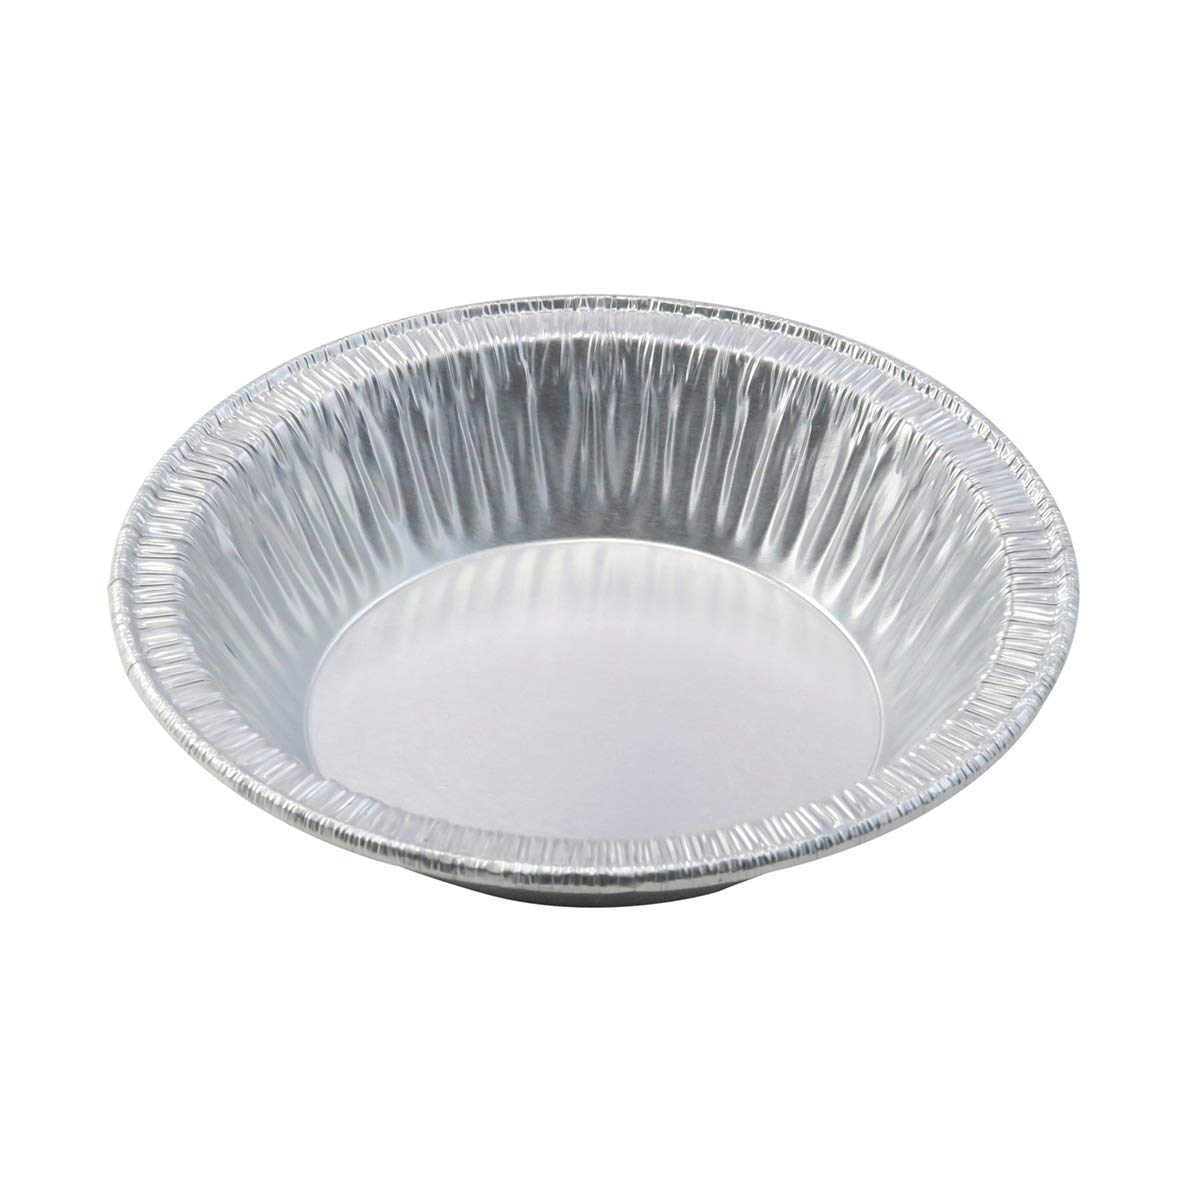 Disposable Aluminum 4 1/4'' Deep Tart Pan #425 (50)